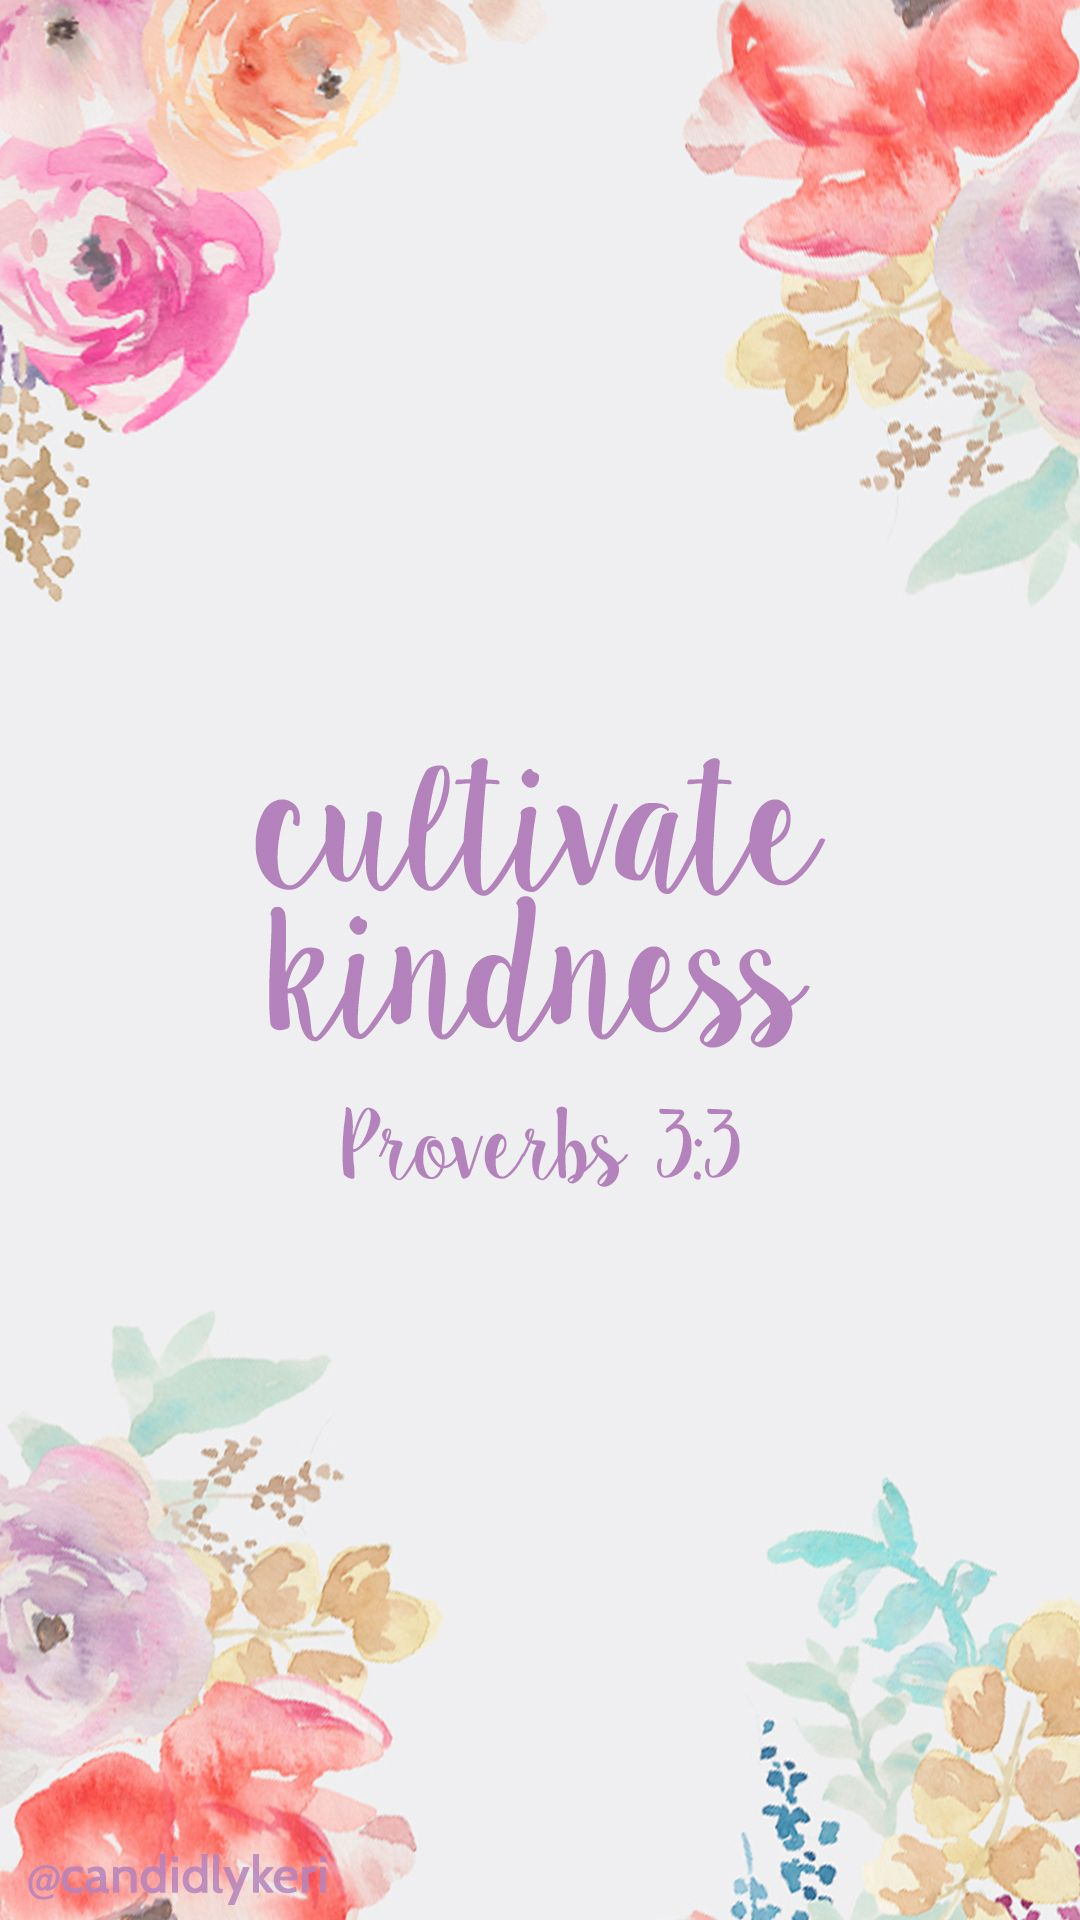 Cultivate kindness pray proverbs 3 3 quote bible background